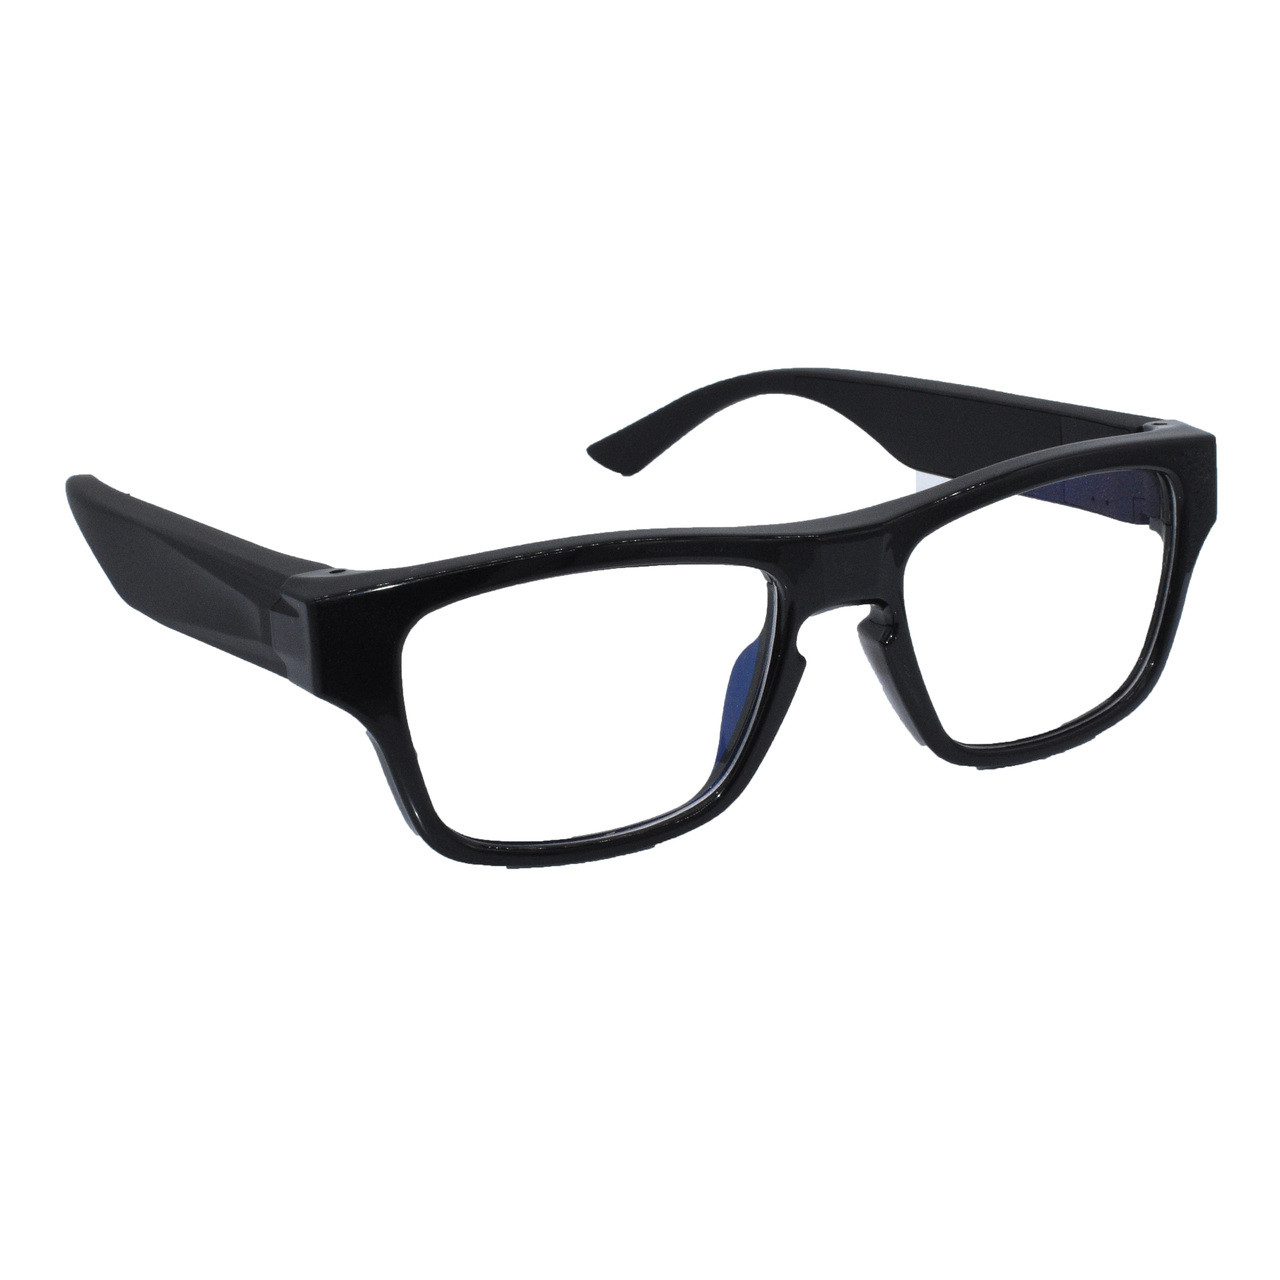 7086aecdd5 1080P HD Full Frame Spy Camera Glasses w  Interchangeable Battery Arms -  SpyAssociates.com